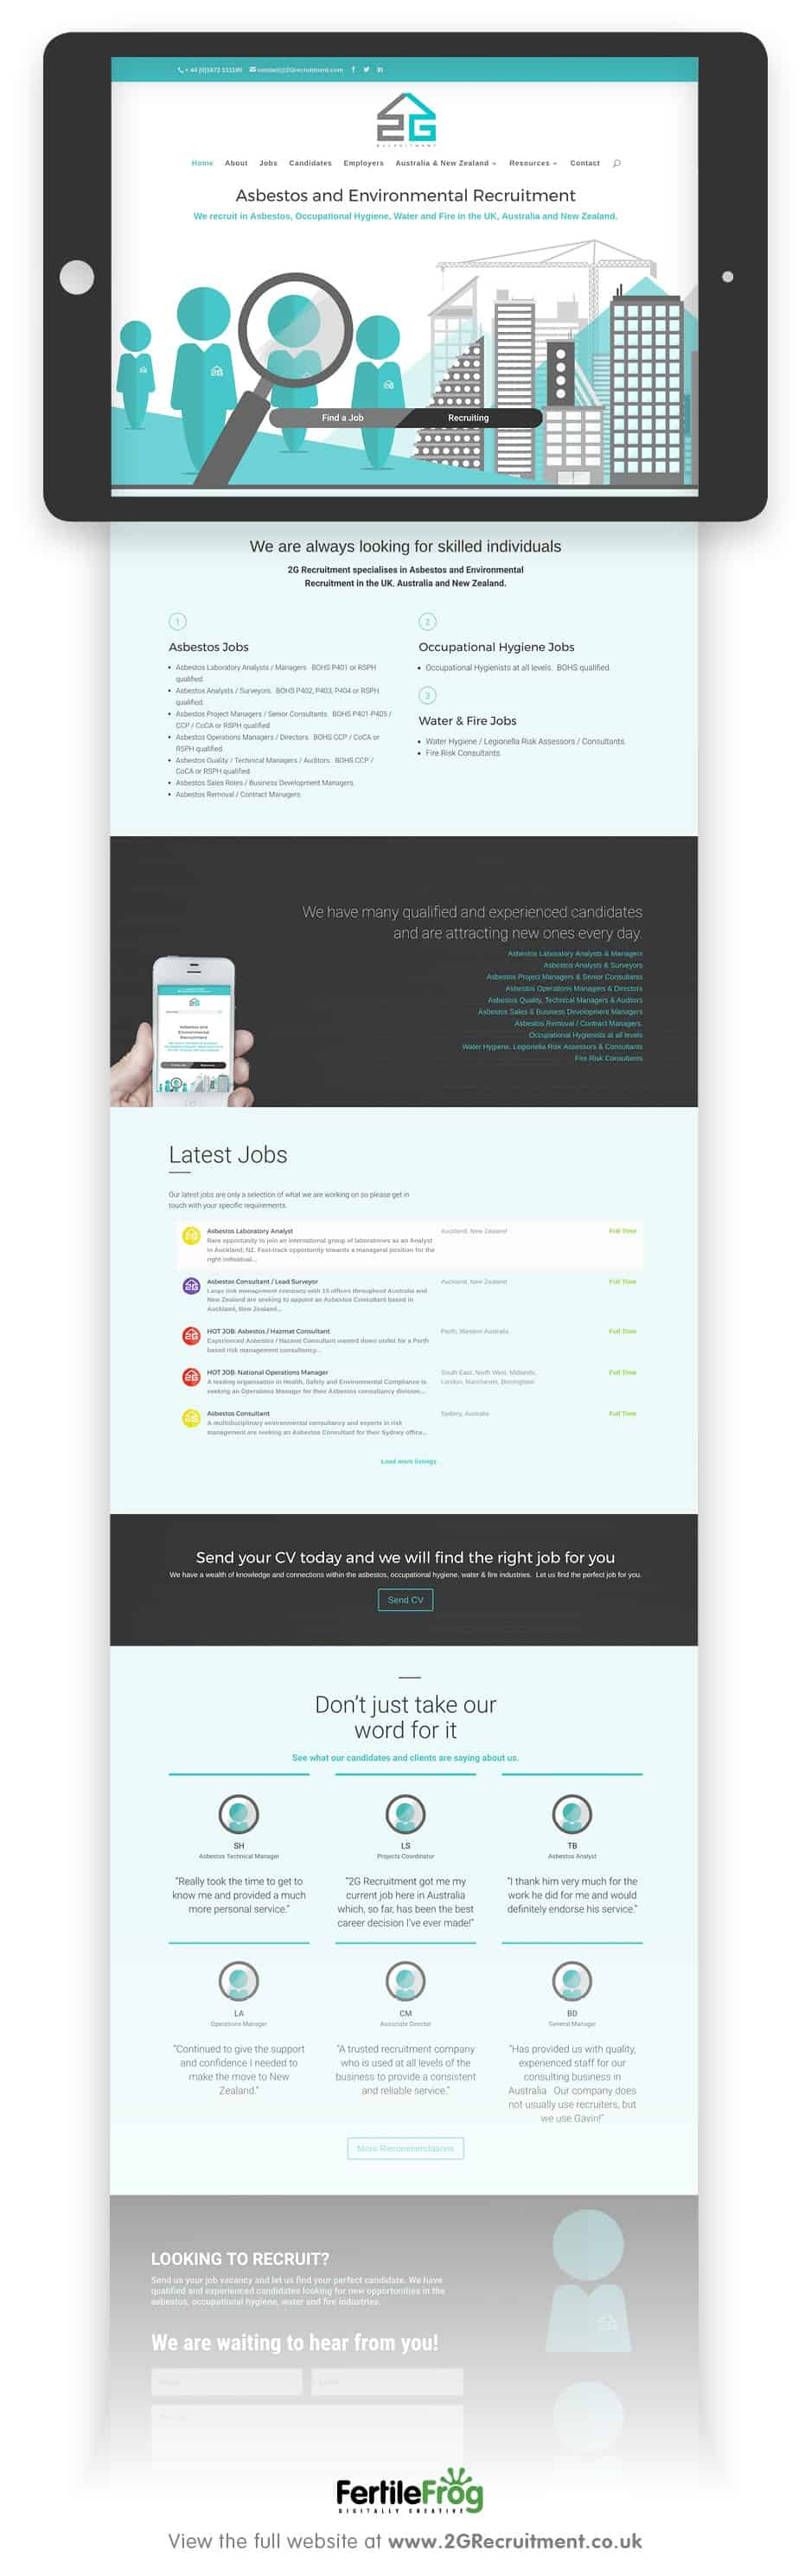 2G Recruitment website home page designed by fertile frog